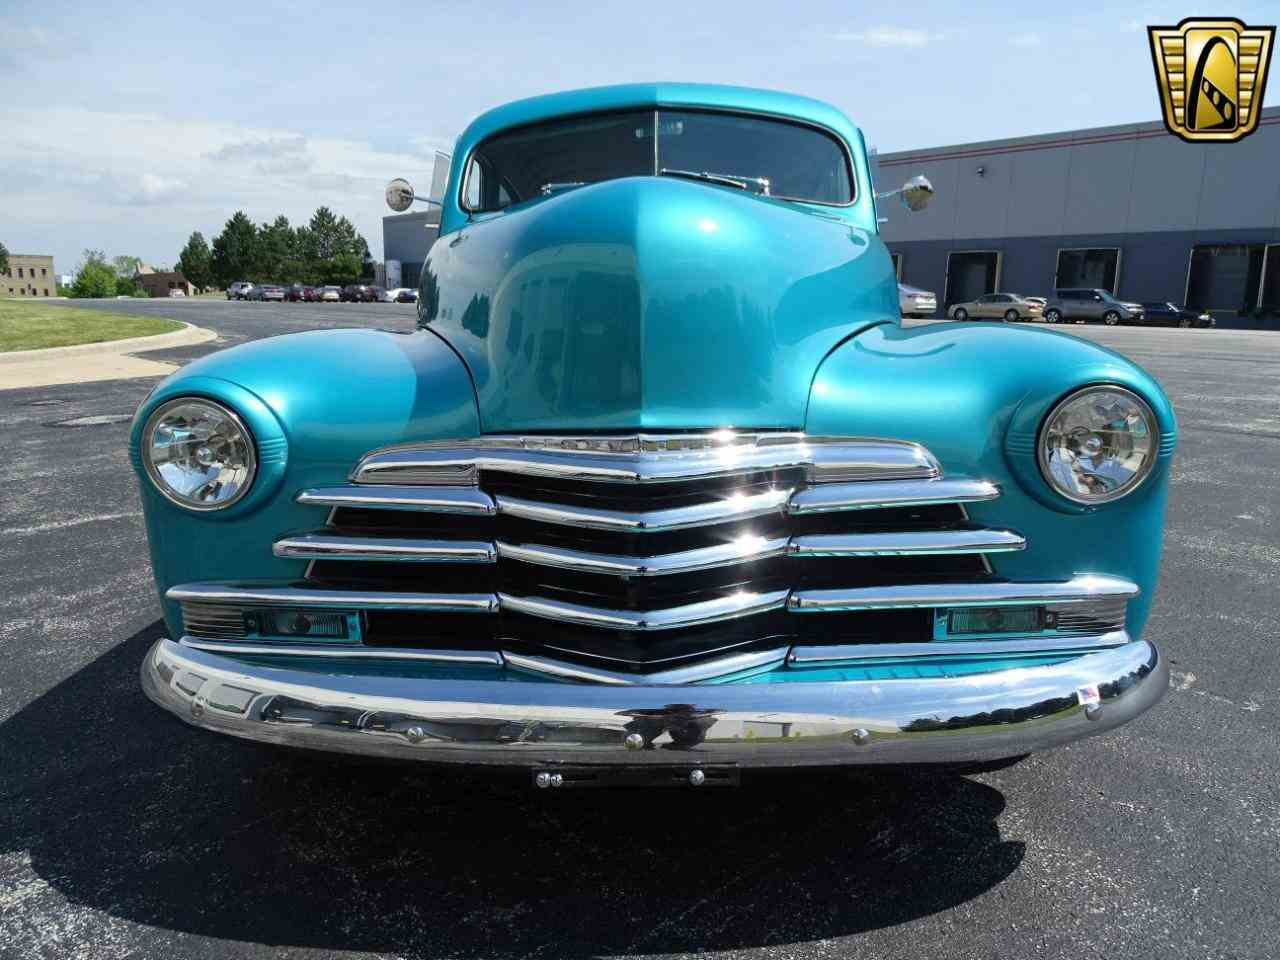 Large Picture of '48 Chevrolet Fleetline located in Crete Illinois - $32,995.00 Offered by Gateway Classic Cars - Chicago - LC3F